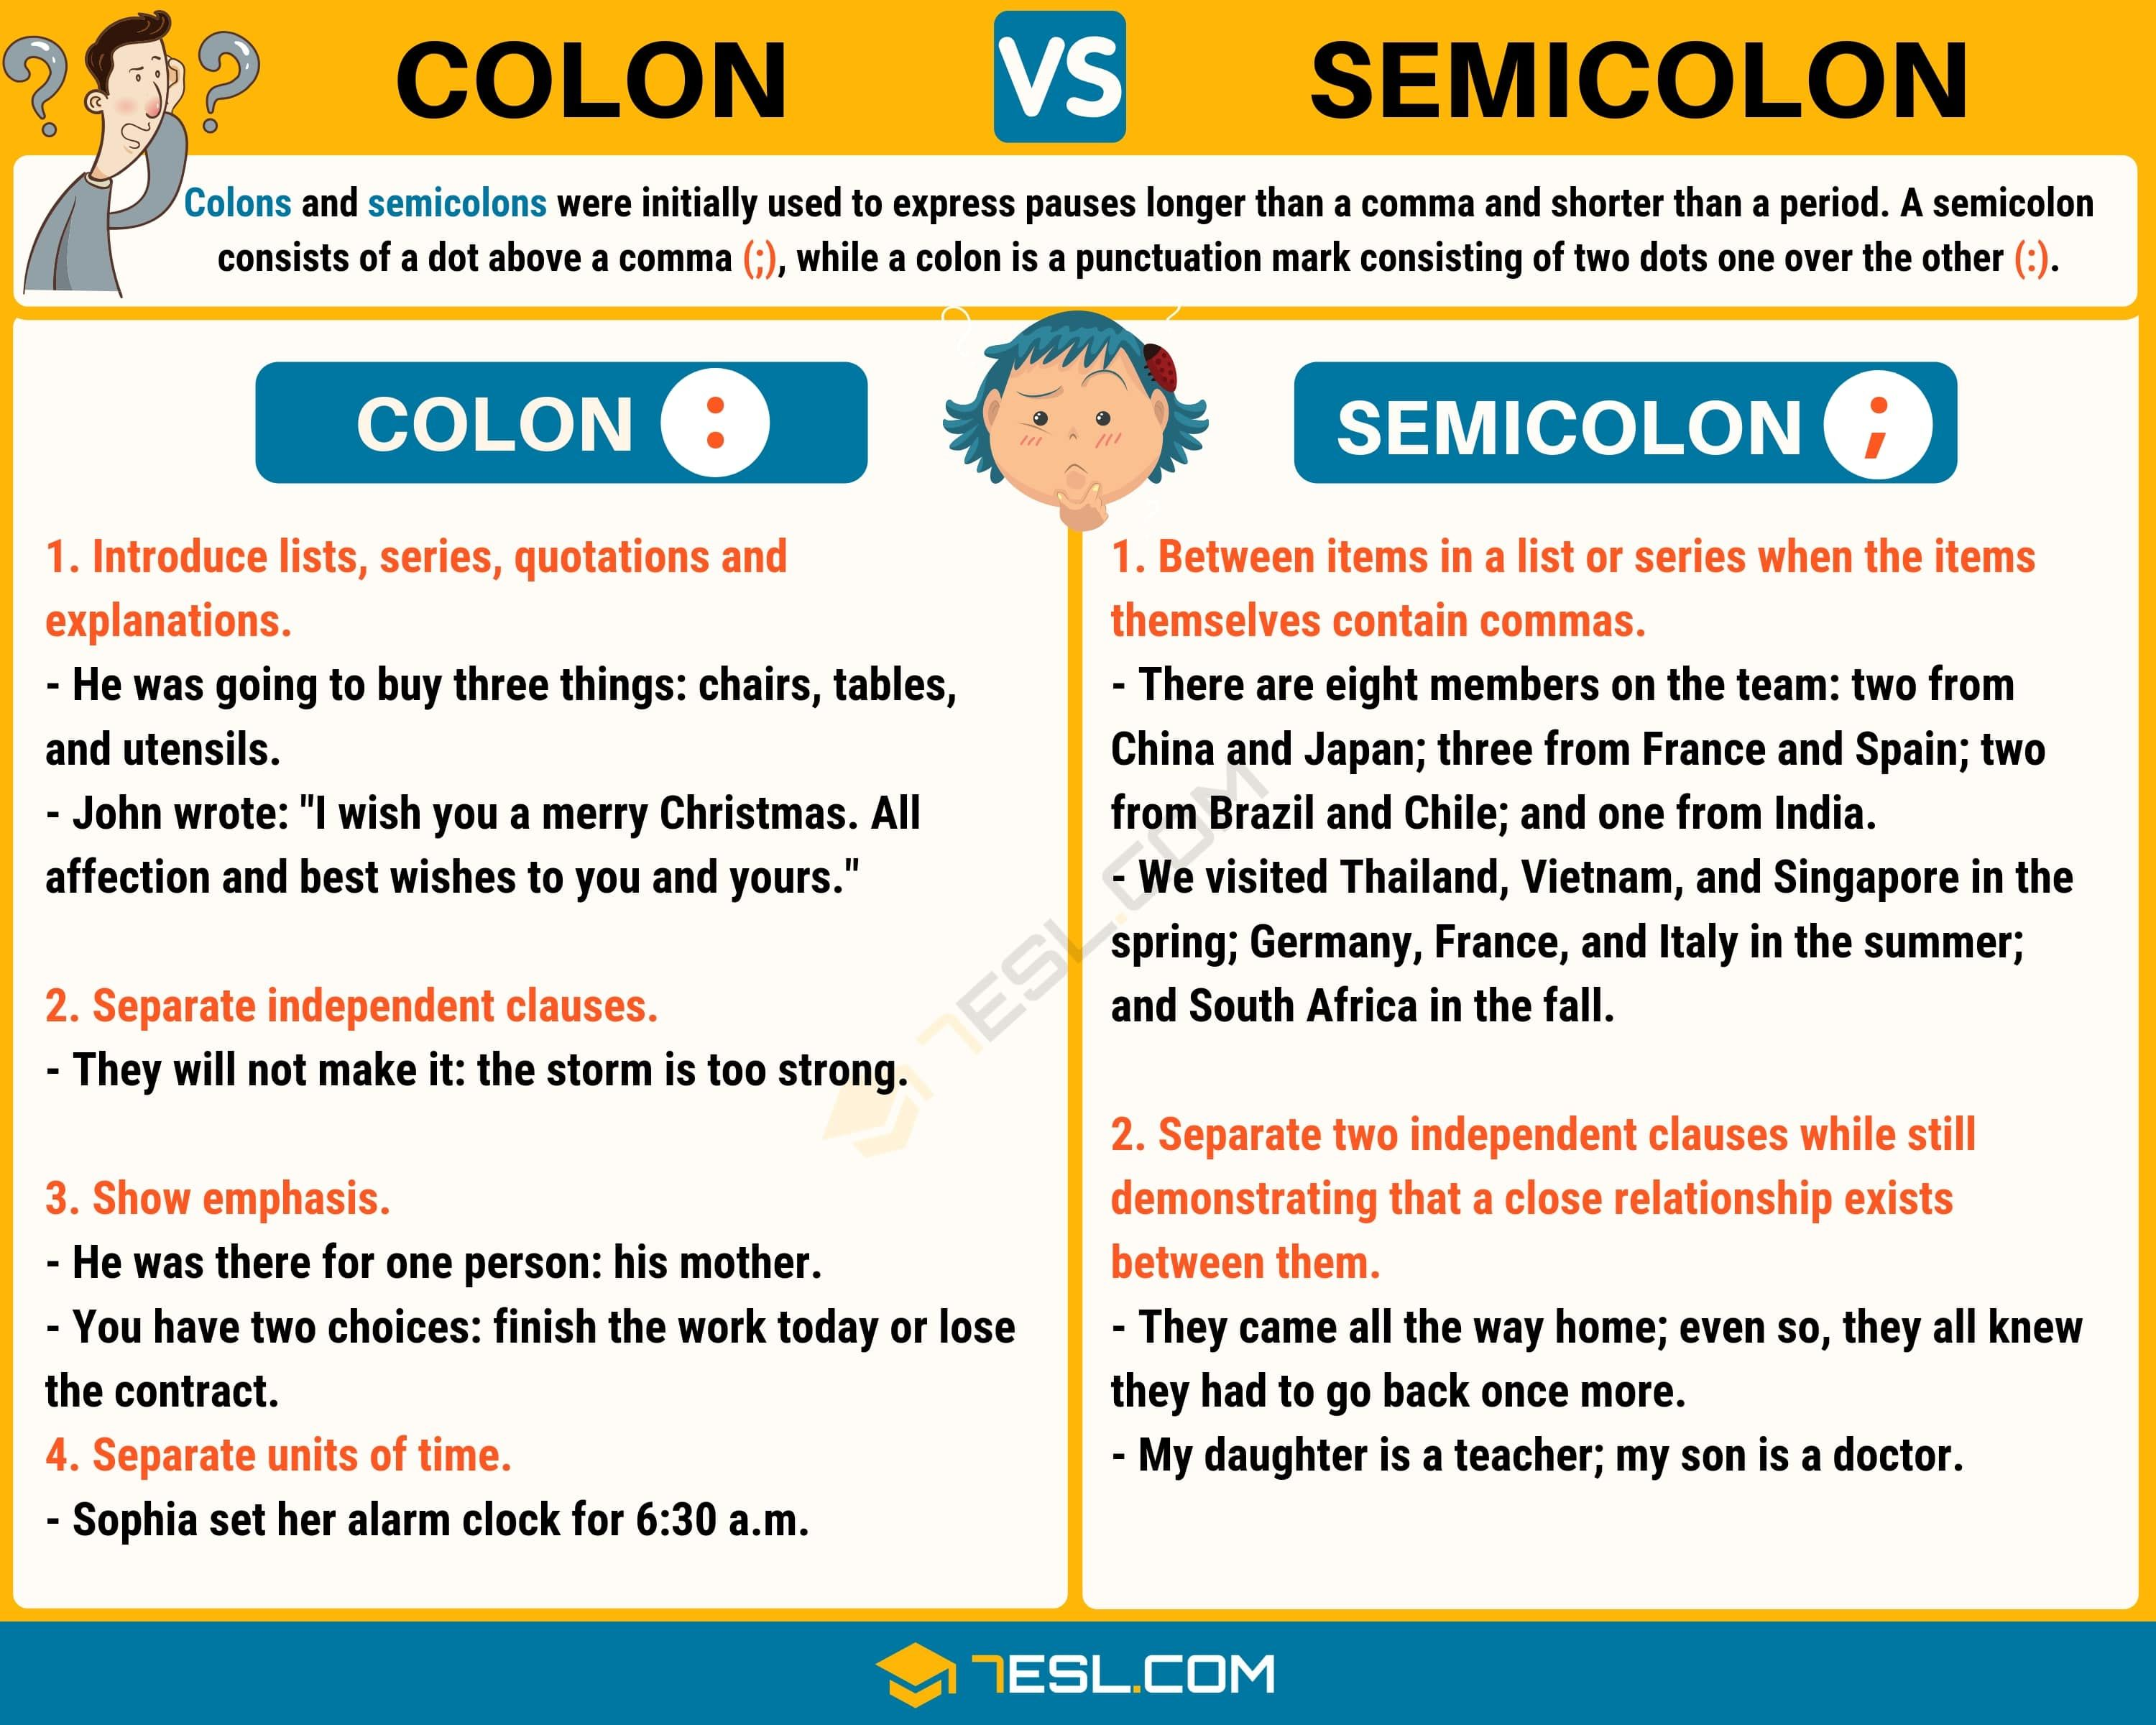 Semicolon Vs Colon When To Use A Semicolon A